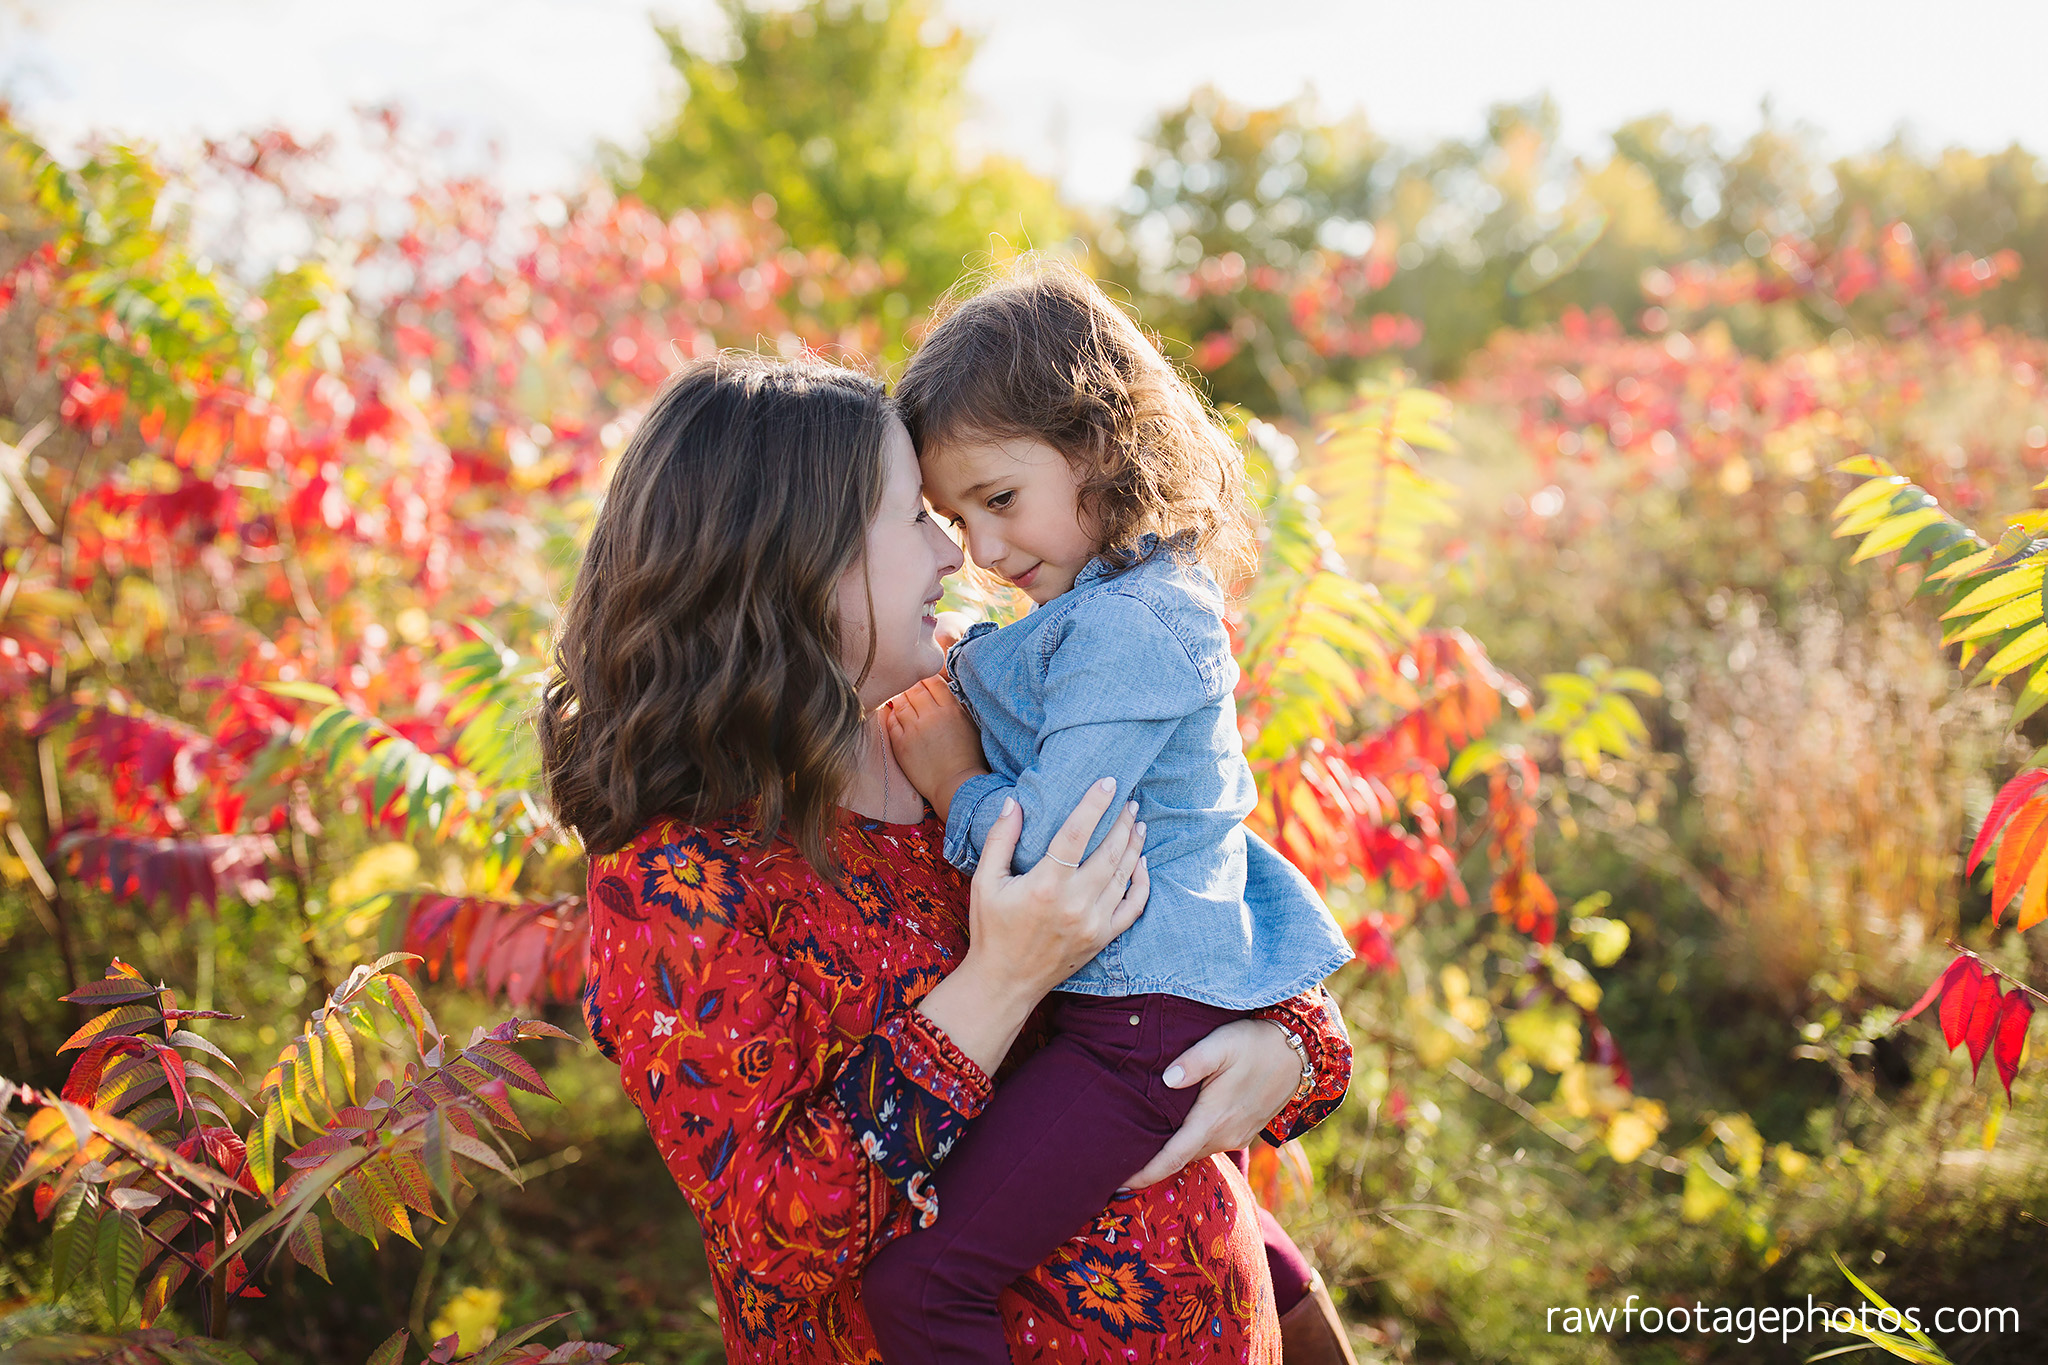 london_ontario_family_photographer-golden_hour_maternity_session-raw_footage_photography011.jpg